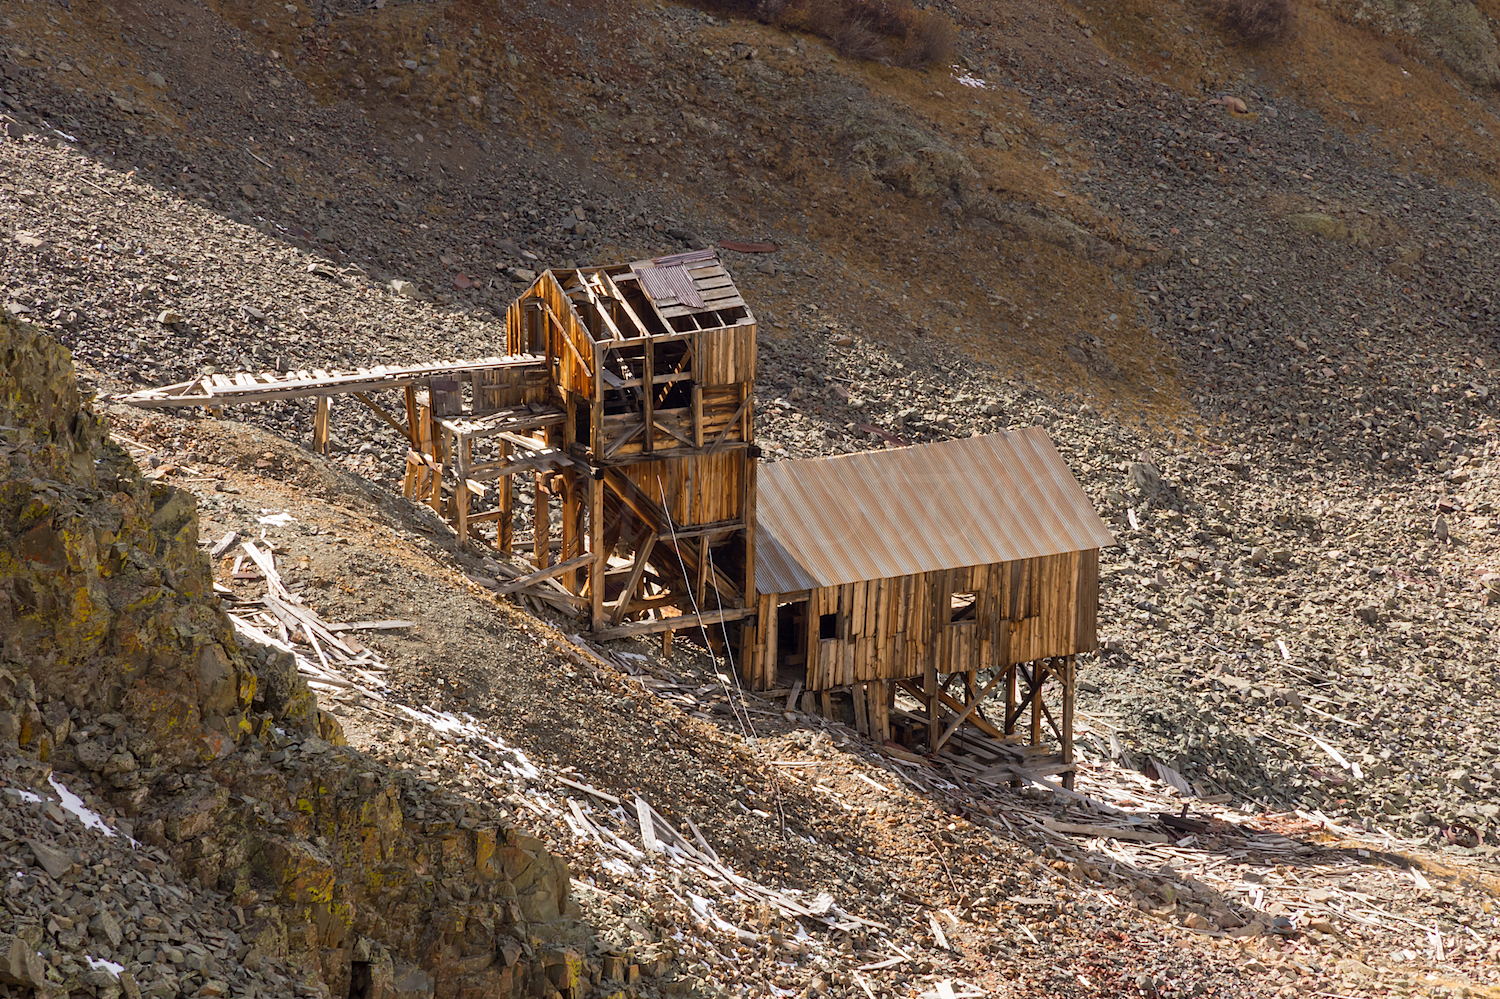 Contention Mine Tramhouse, Image # 8717